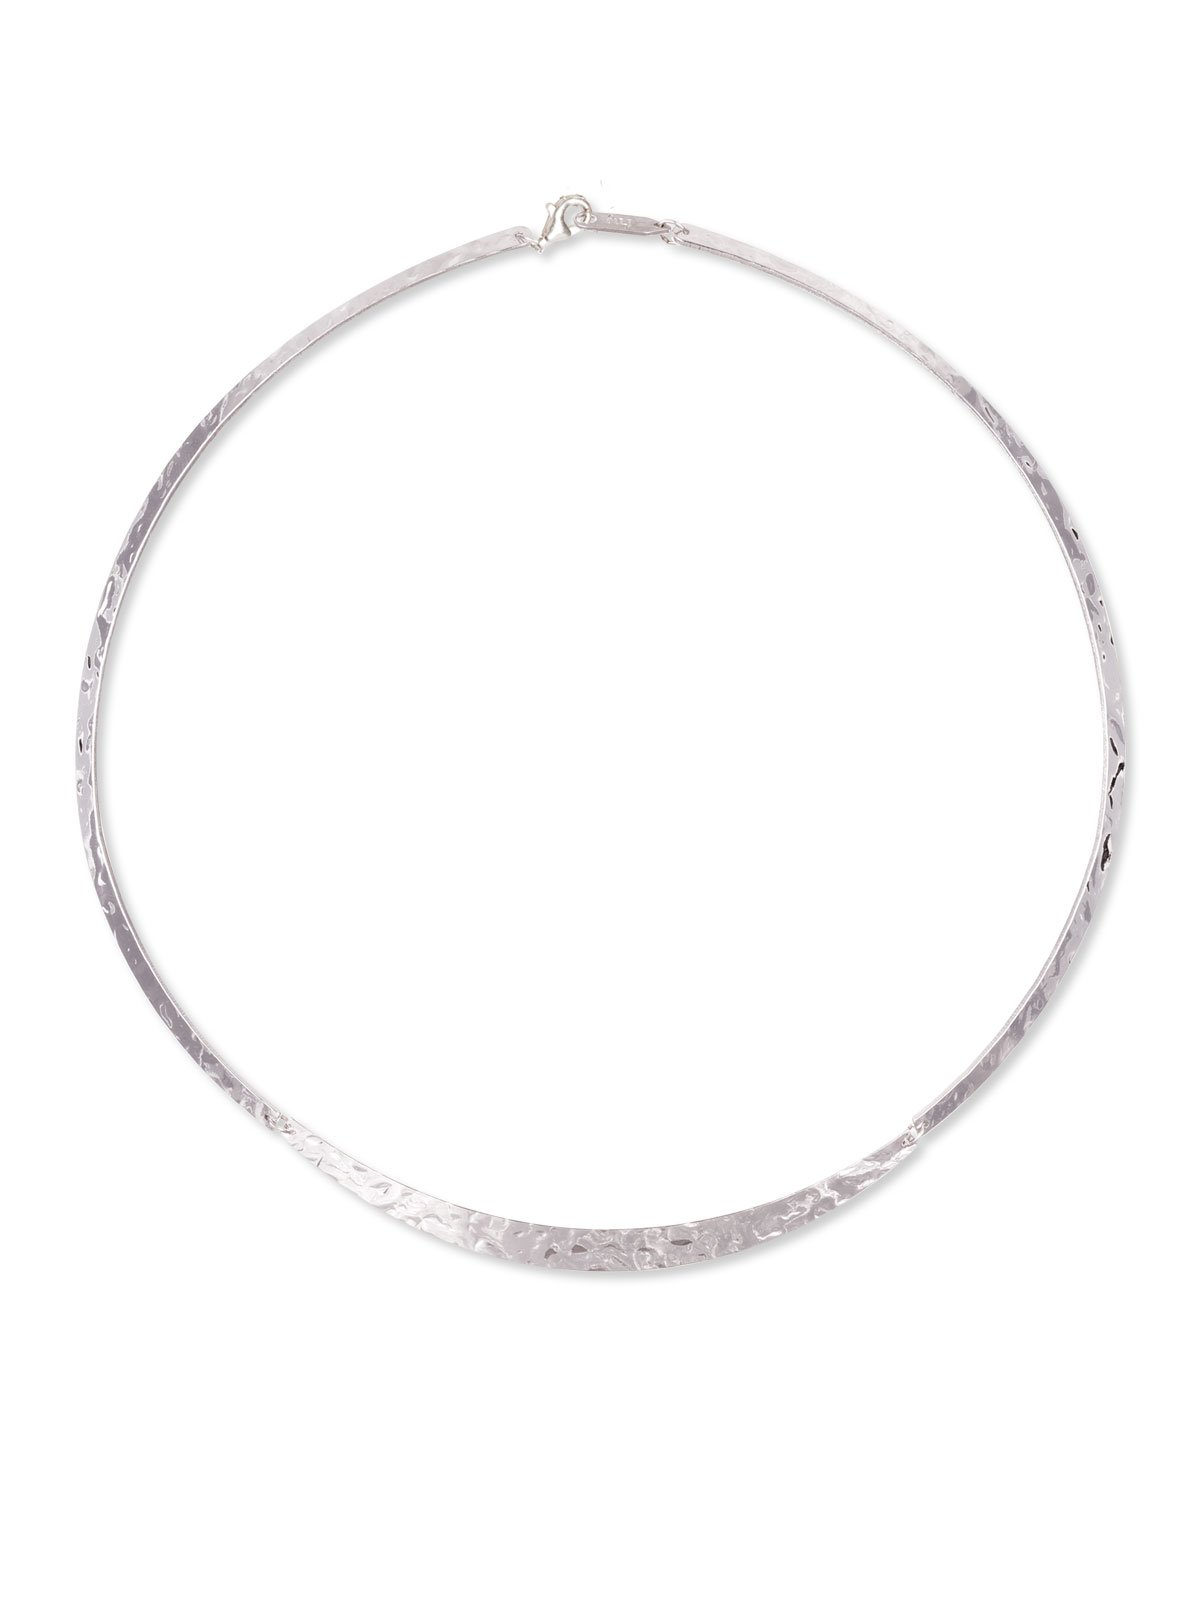 Holly Yashi Gemma Necklace, Made in California (Silver-Plated-Base)